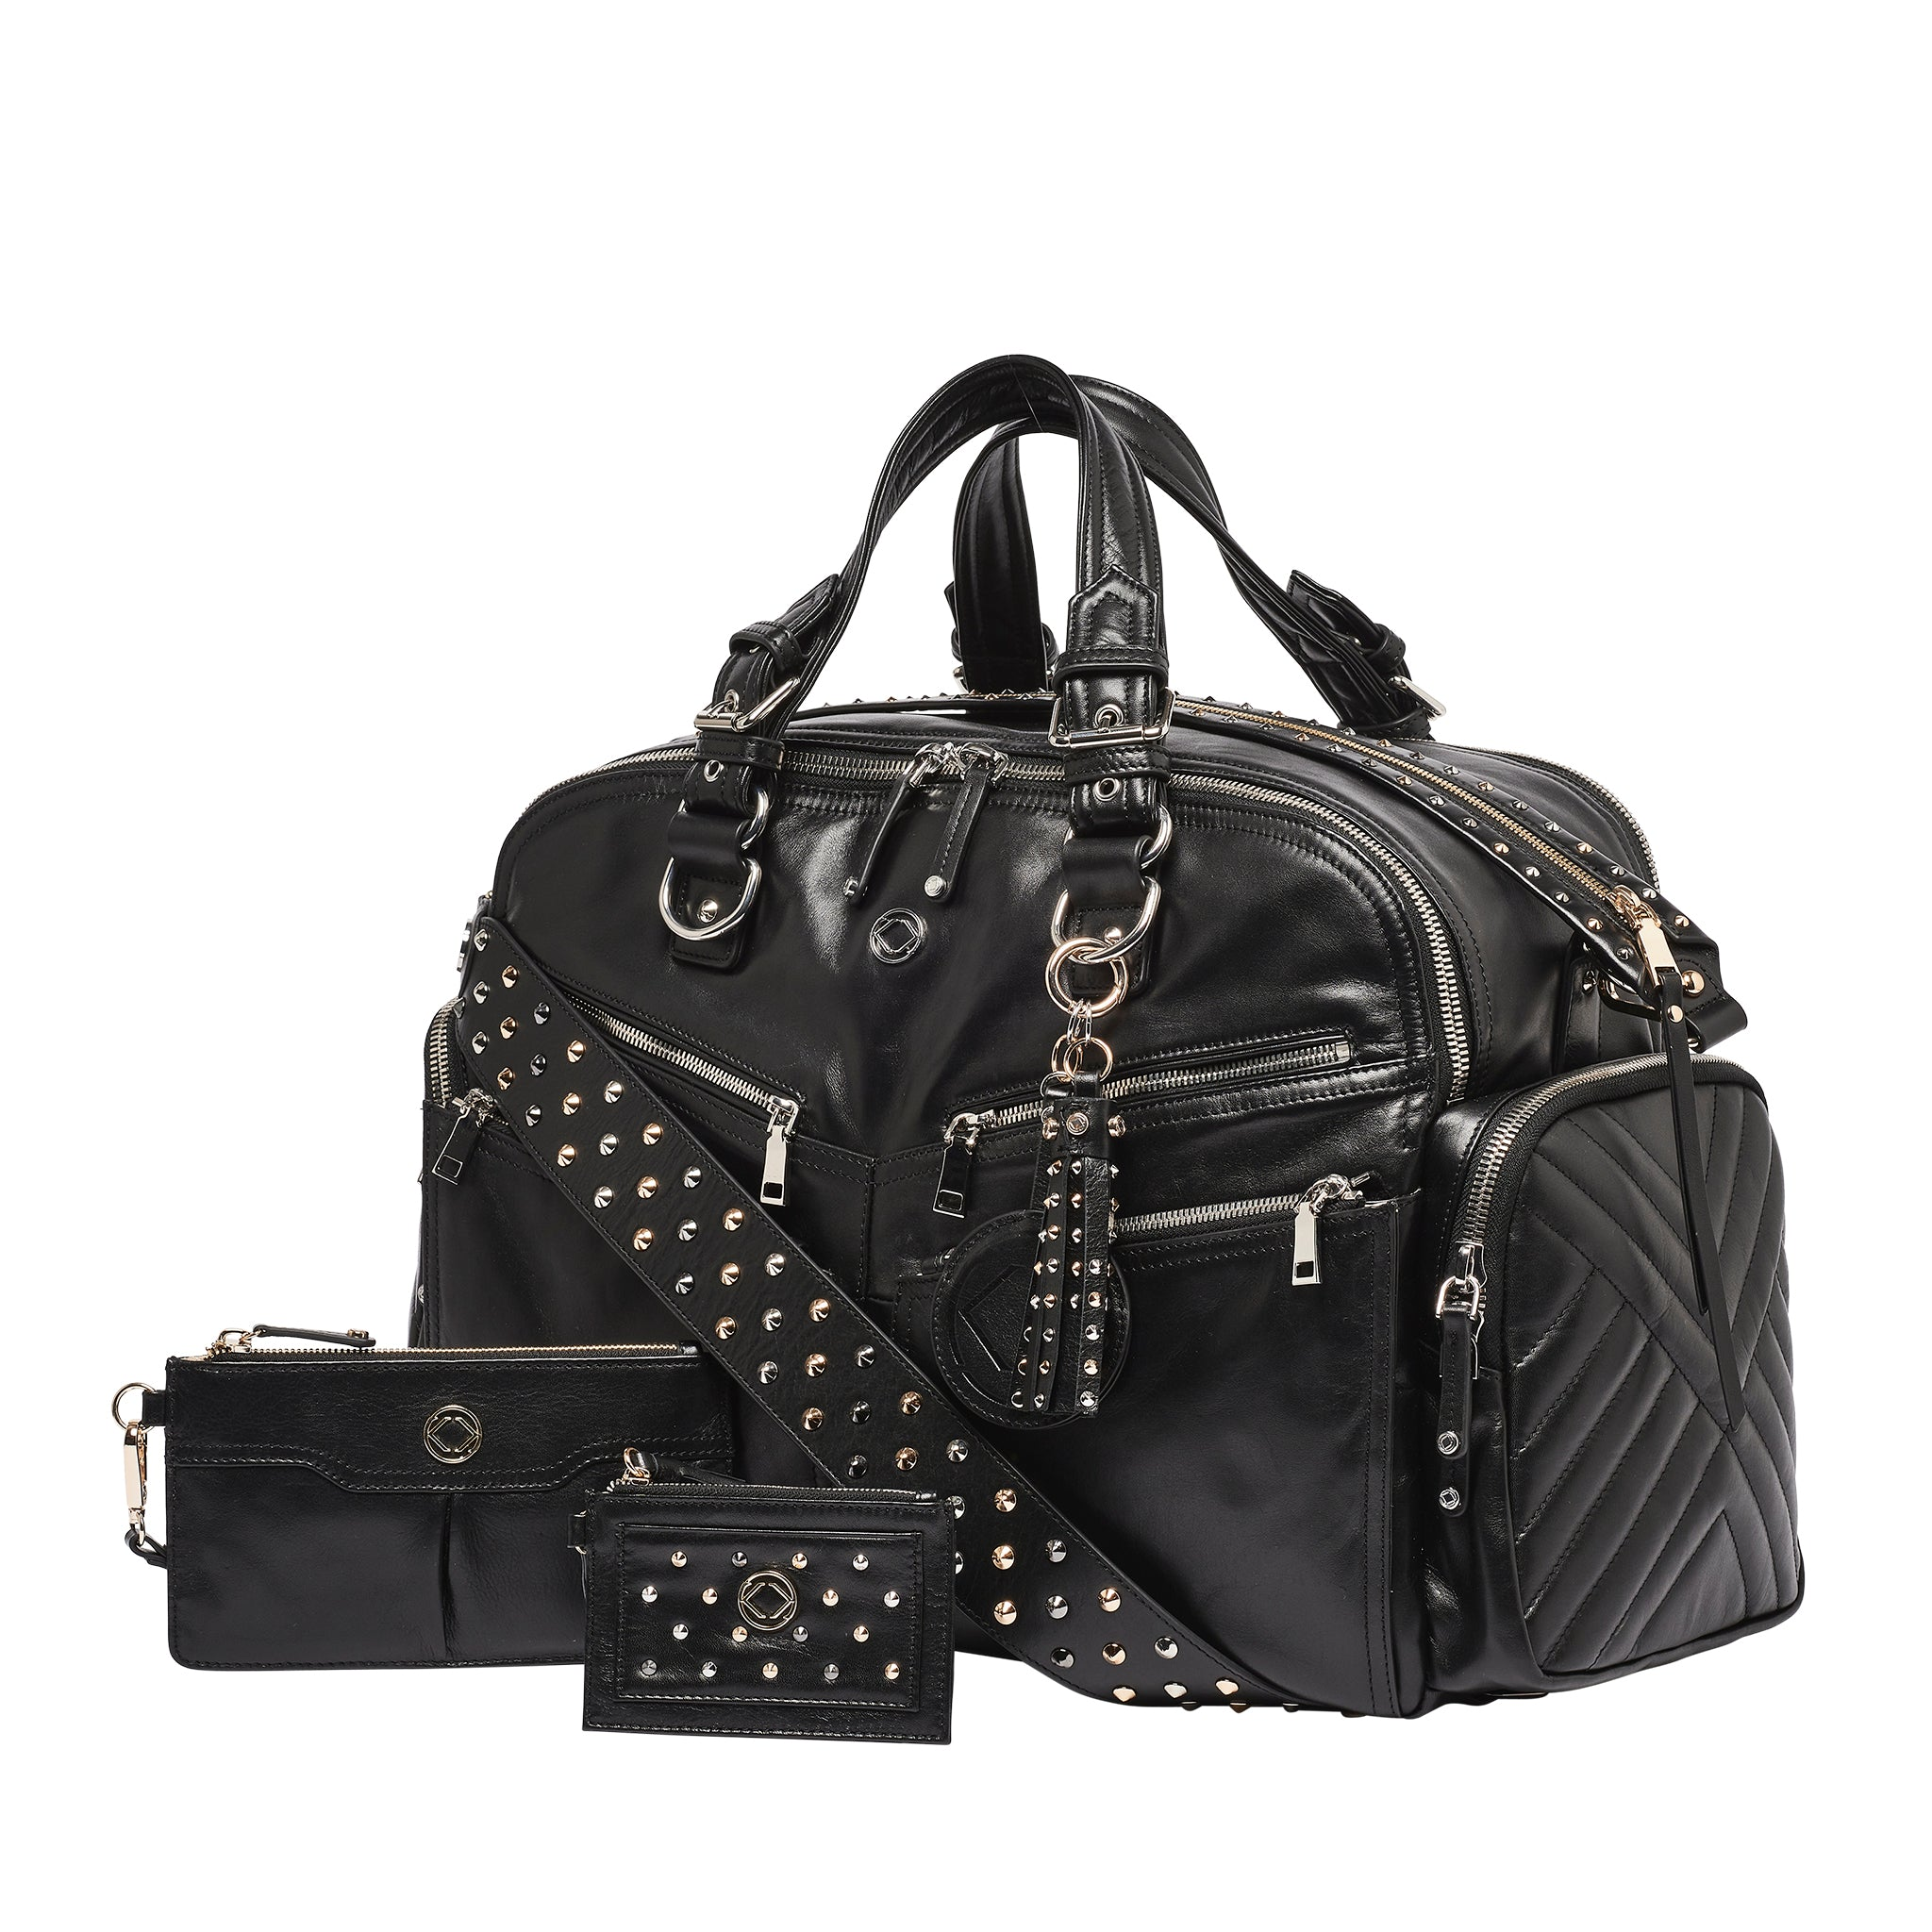 Westwood XL Black-Silver Leather Weekender Bag - Pre-order Now Open For March End Delivery